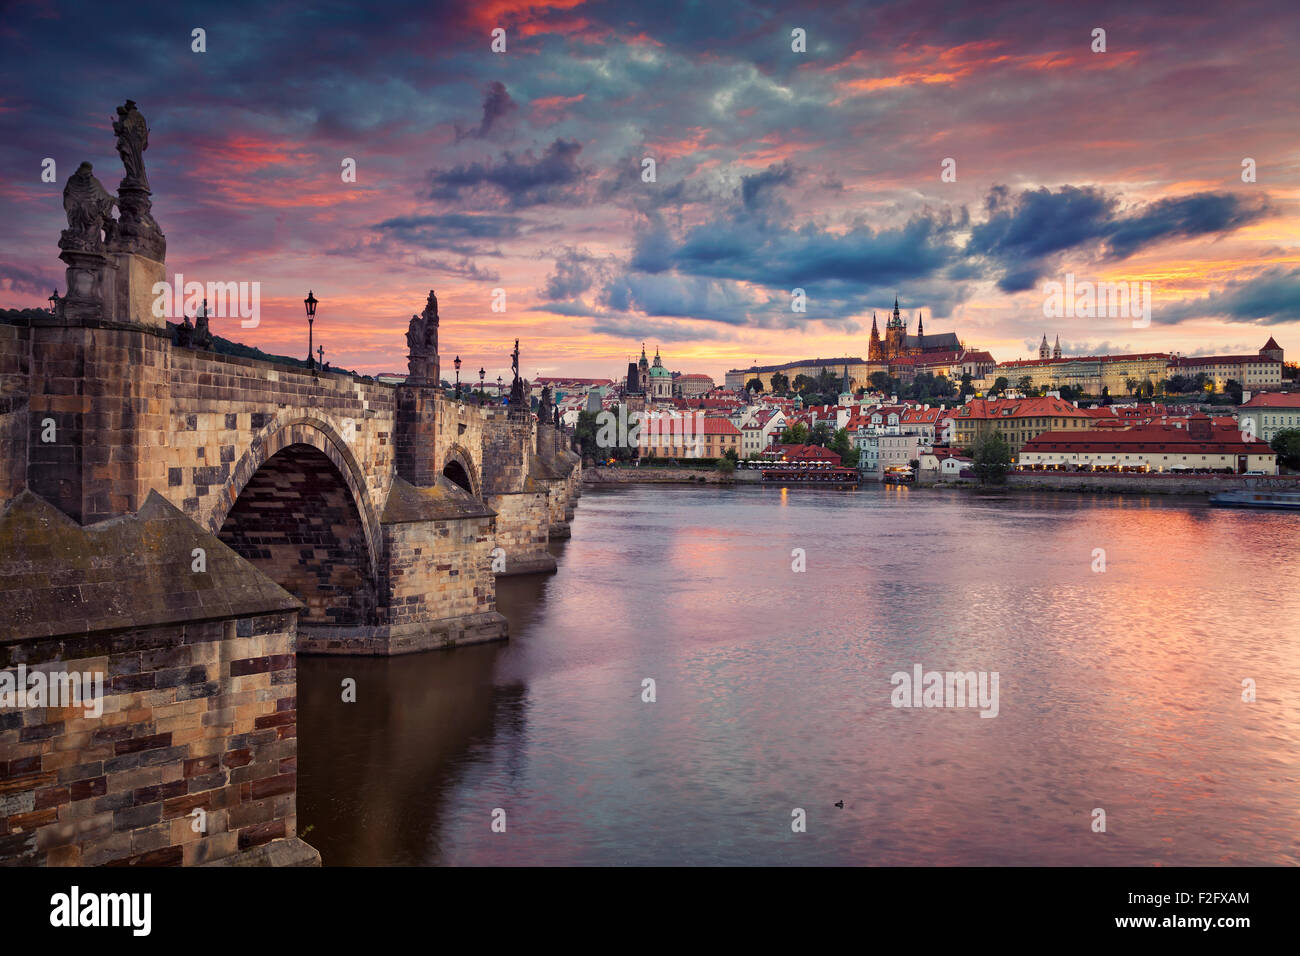 Prague. Image of Prague, capital city of Czech Republic, during beautiful sunset. - Stock Image